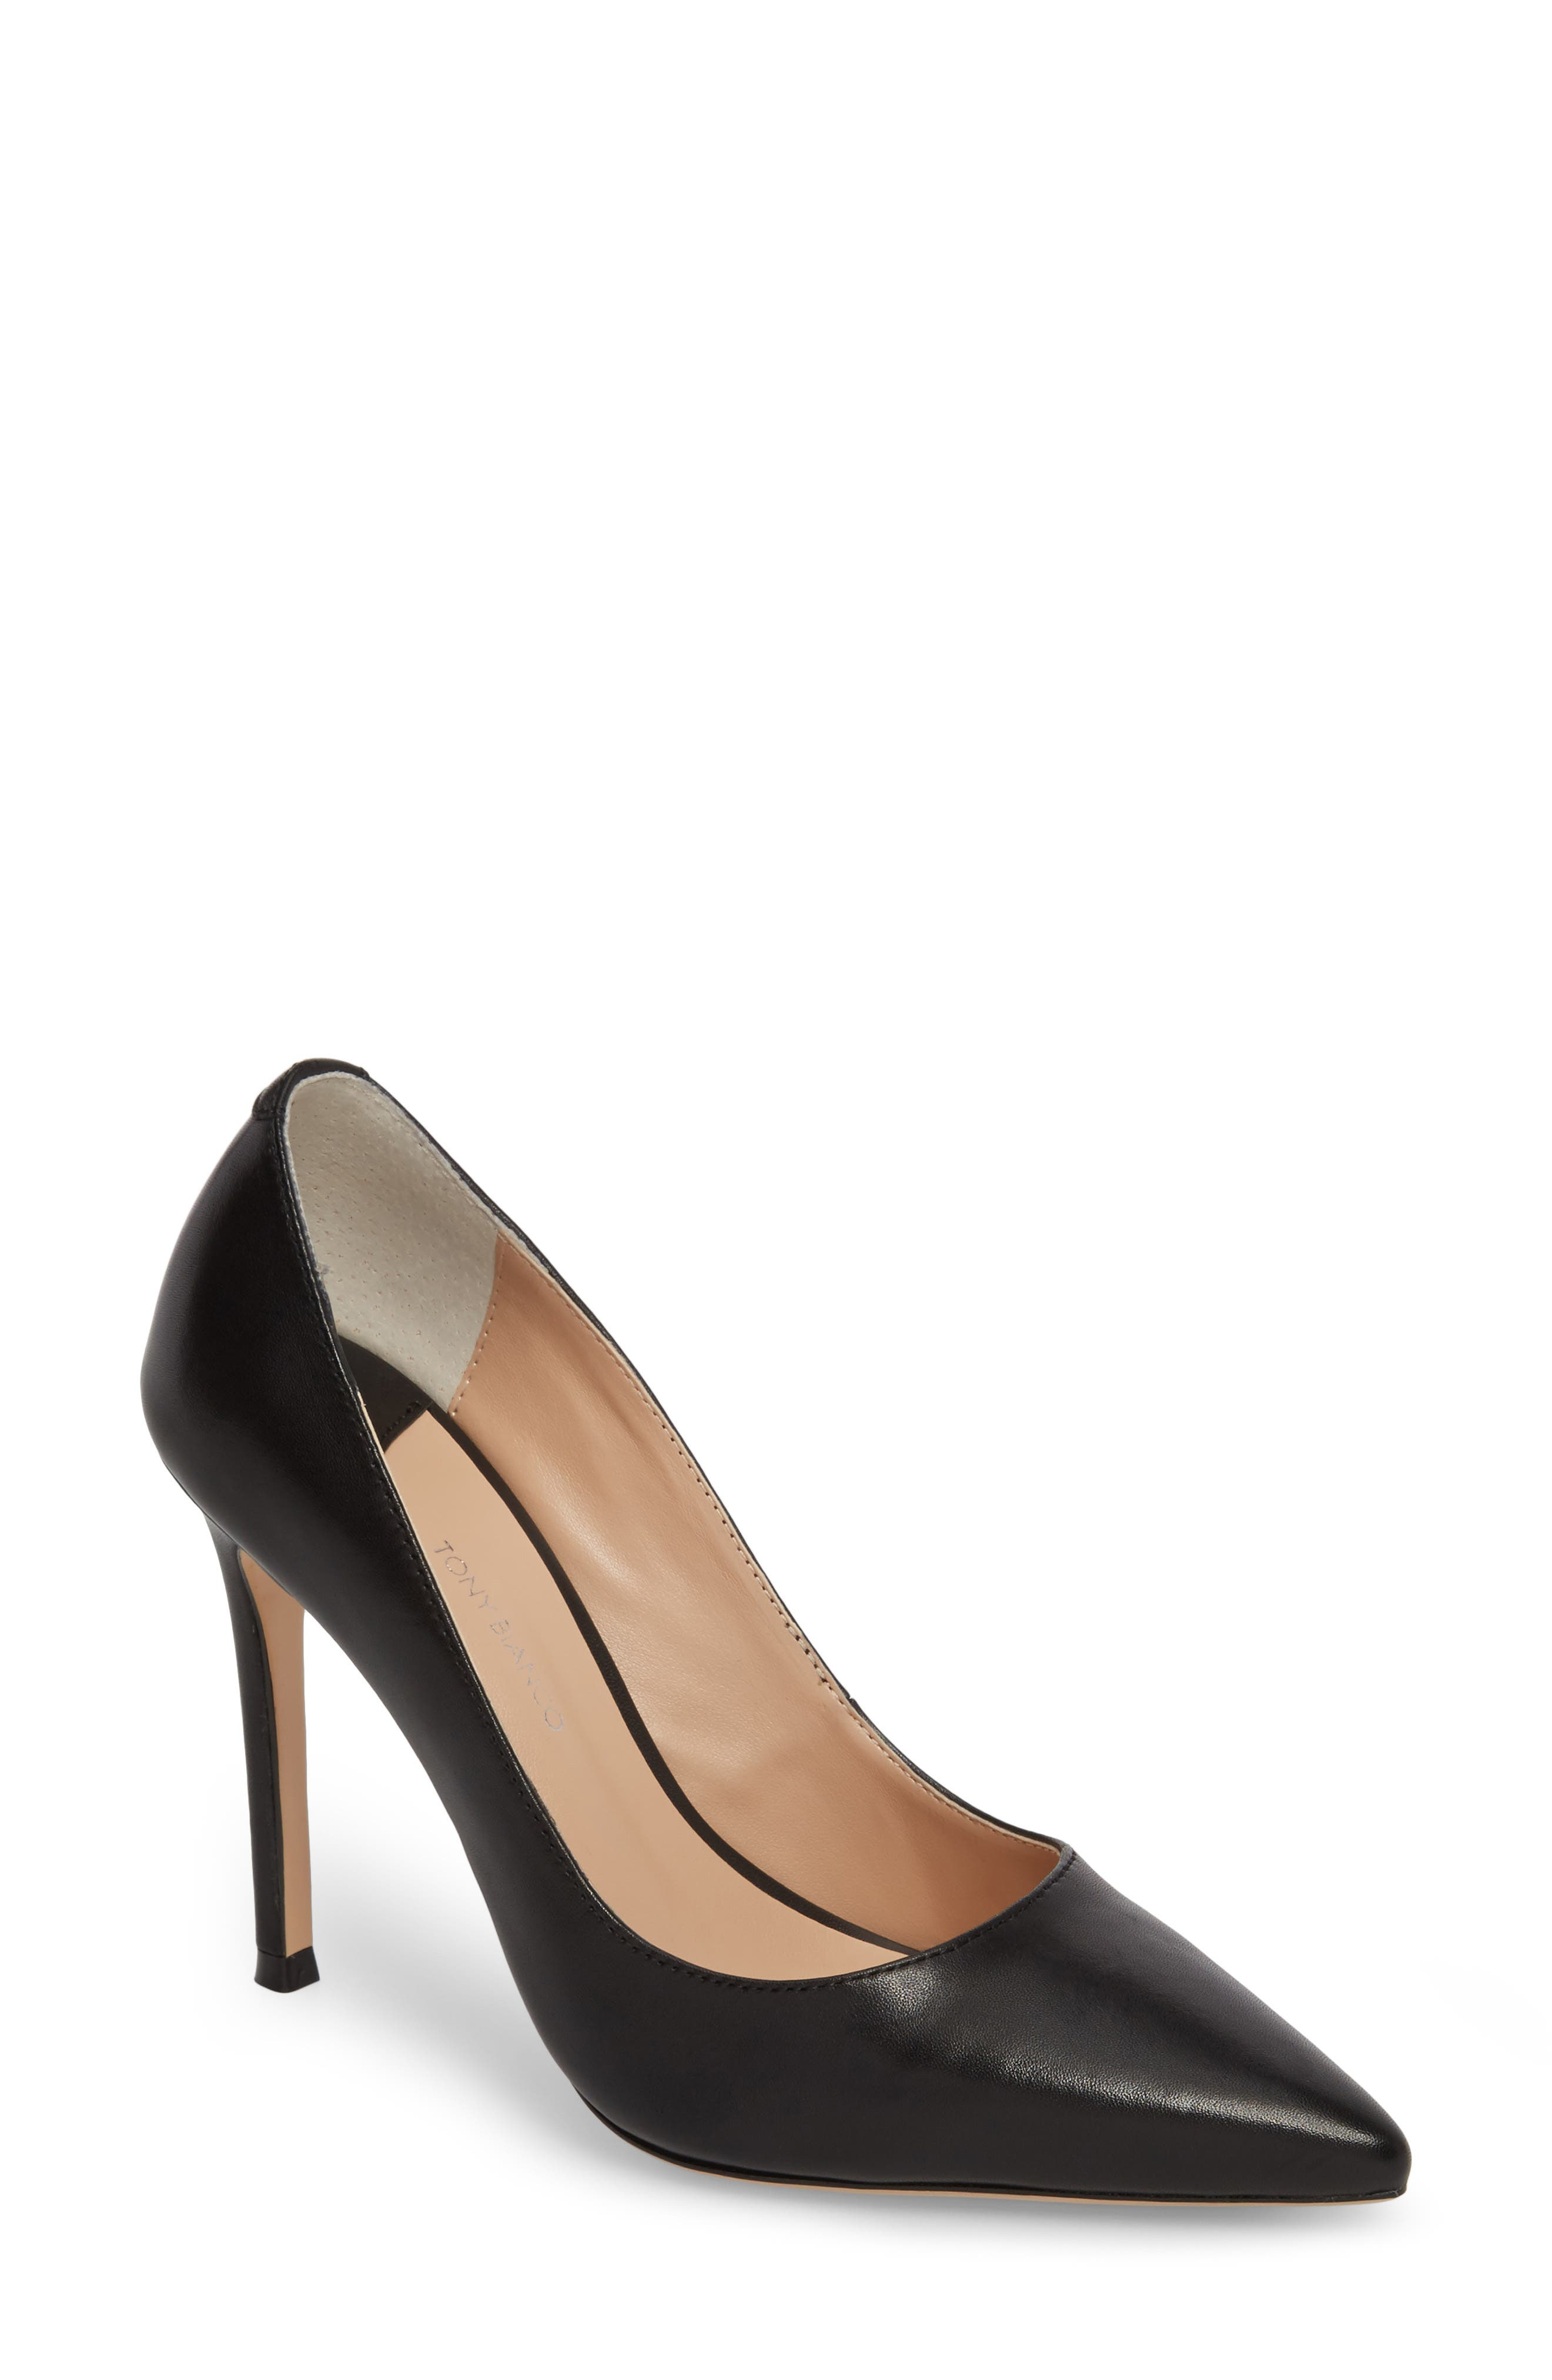 TONY BIANCO, Lotus Pointy Toe Pump, Main thumbnail 1, color, 001